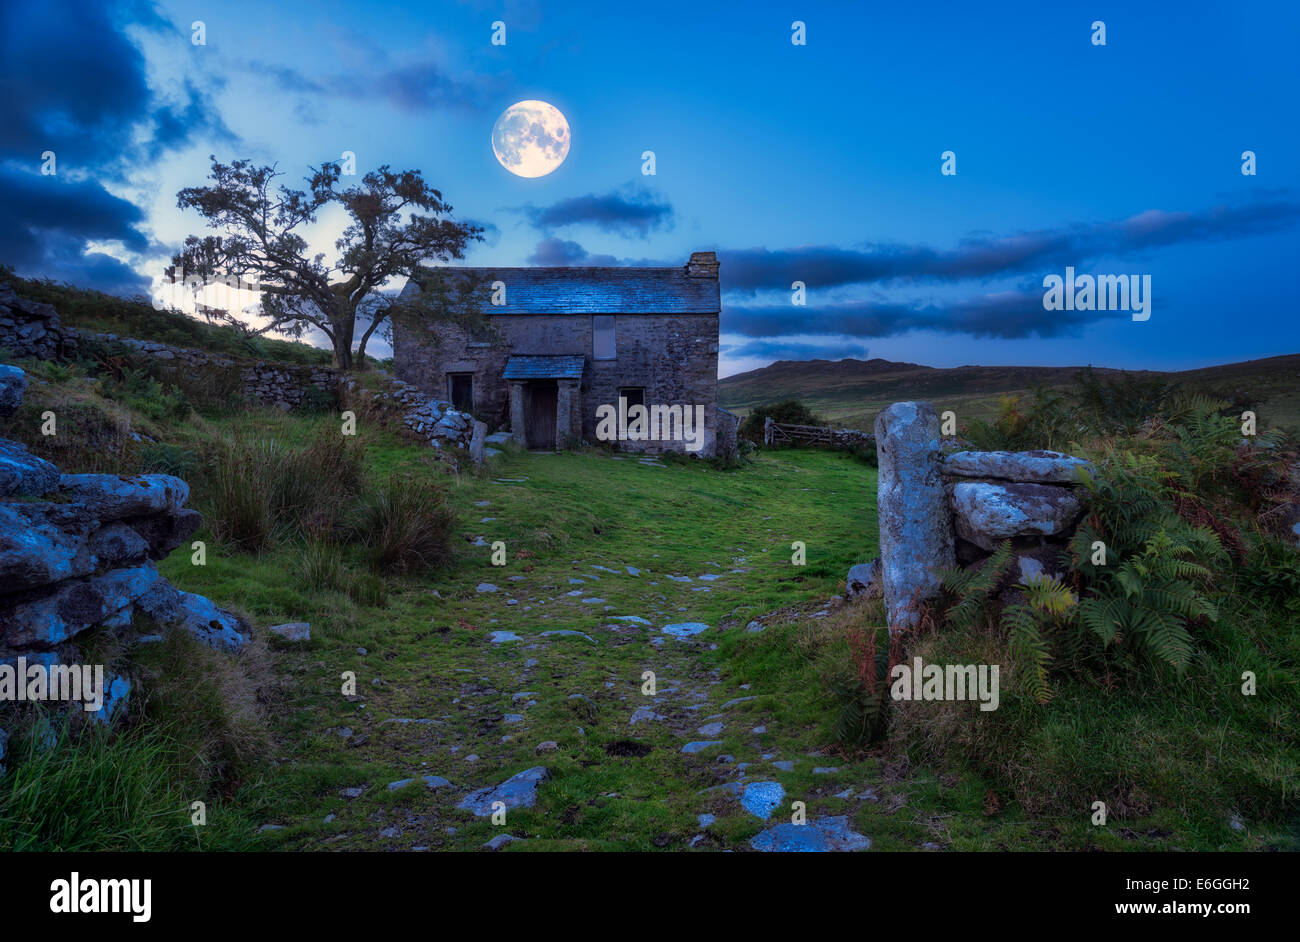 Creepy derelict haunted house under a full moon  (Elements of this image (moon) furnished by NASA) - Stock Image